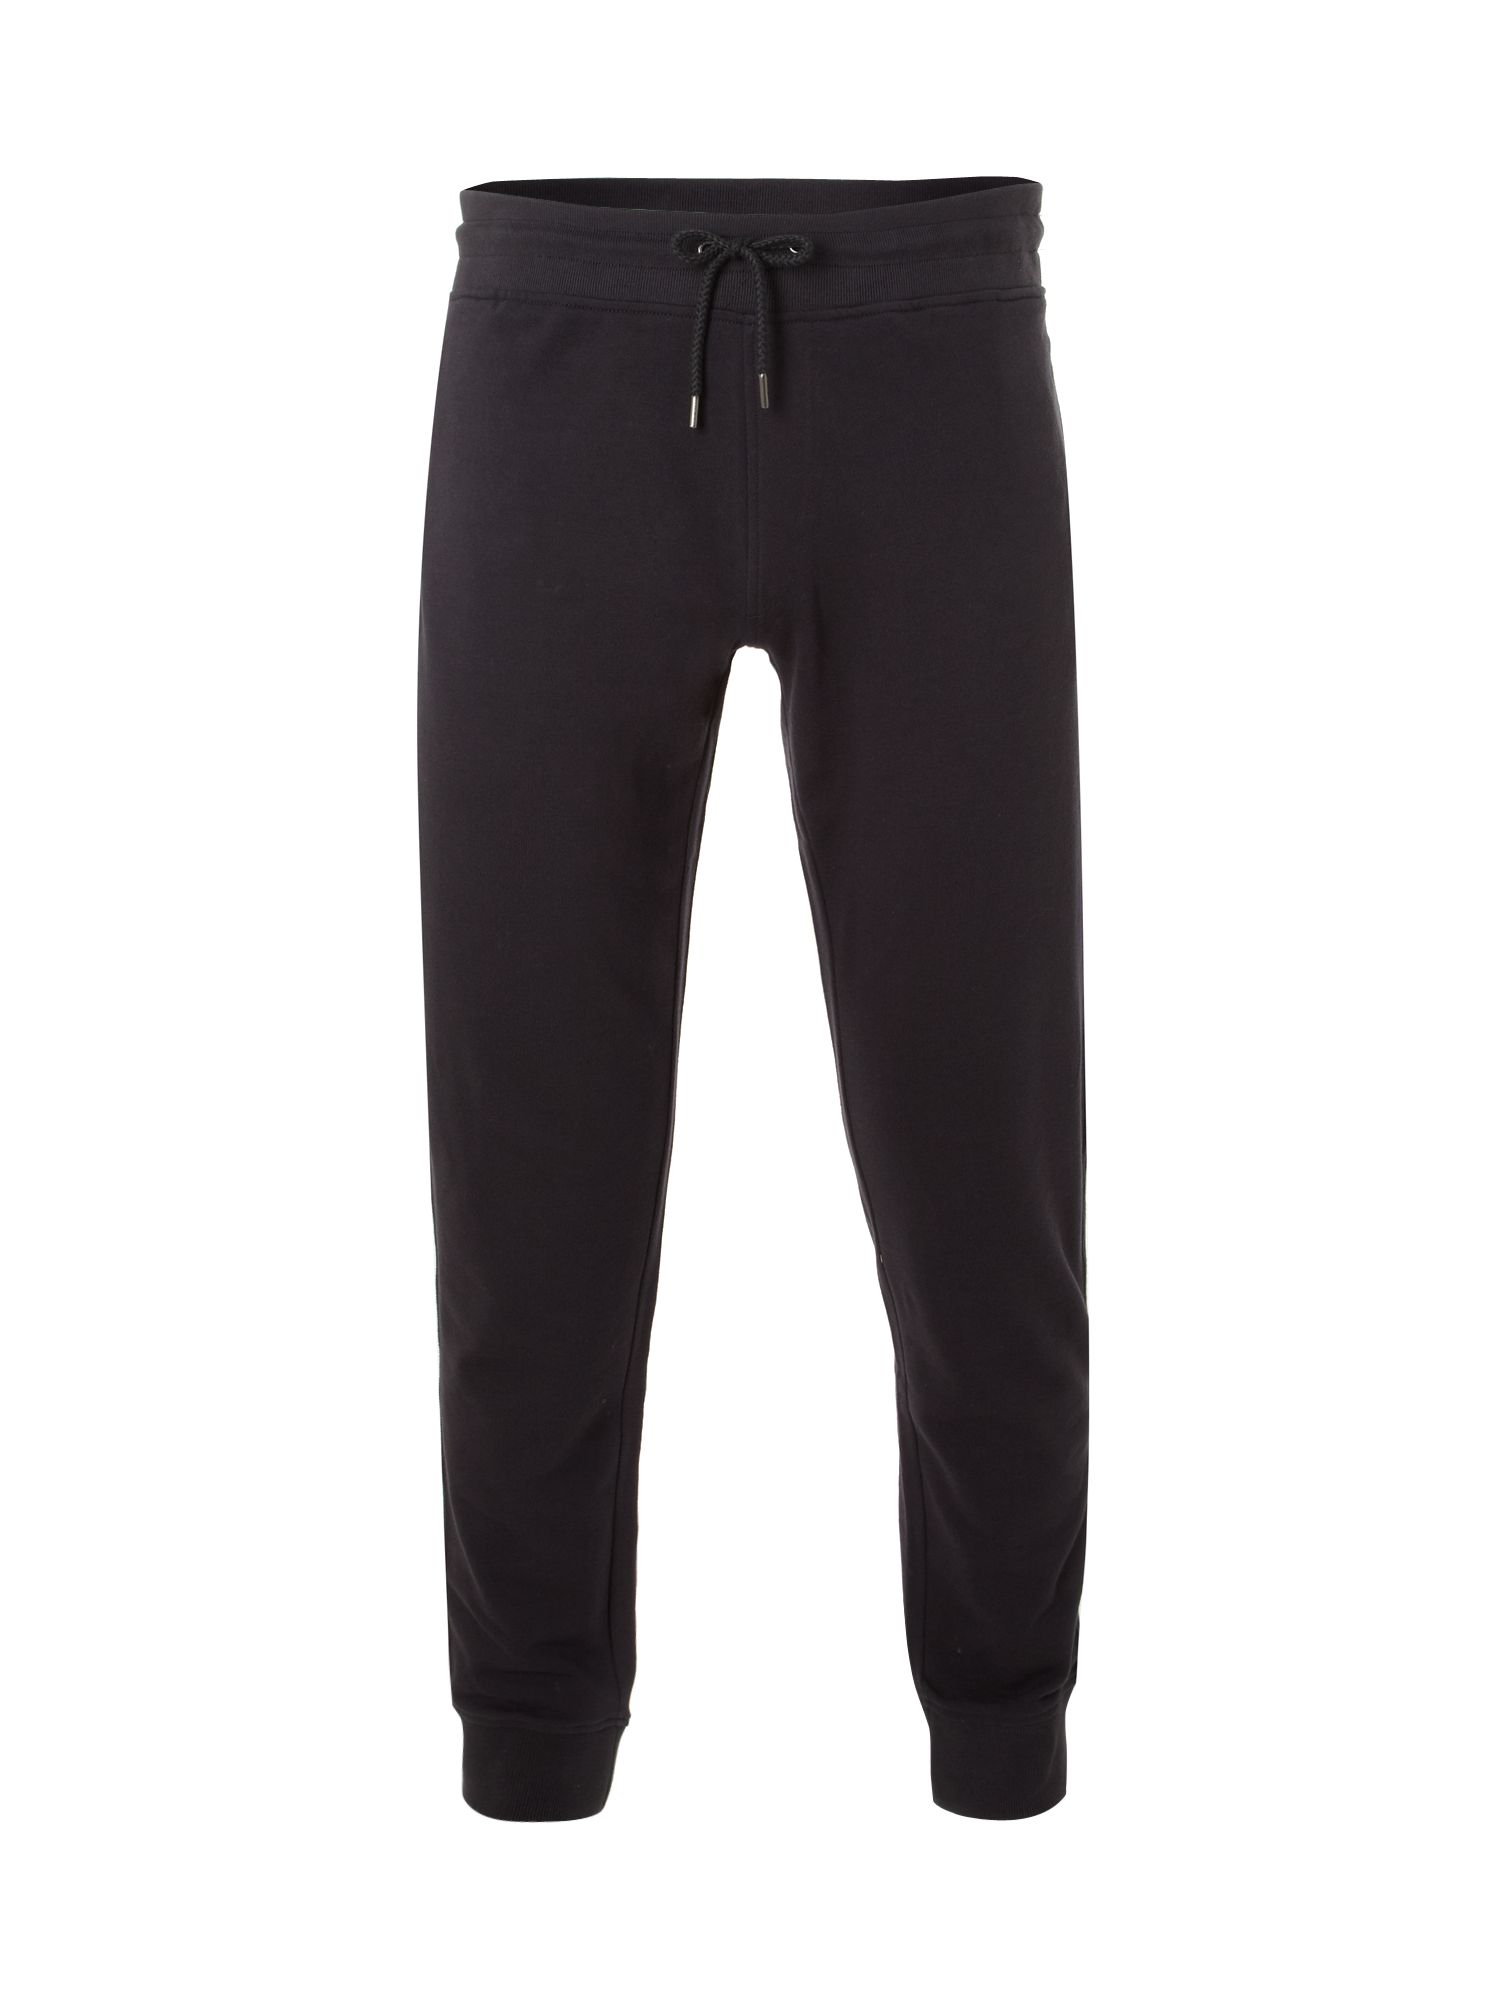 3 pocket tracksuit bottoms